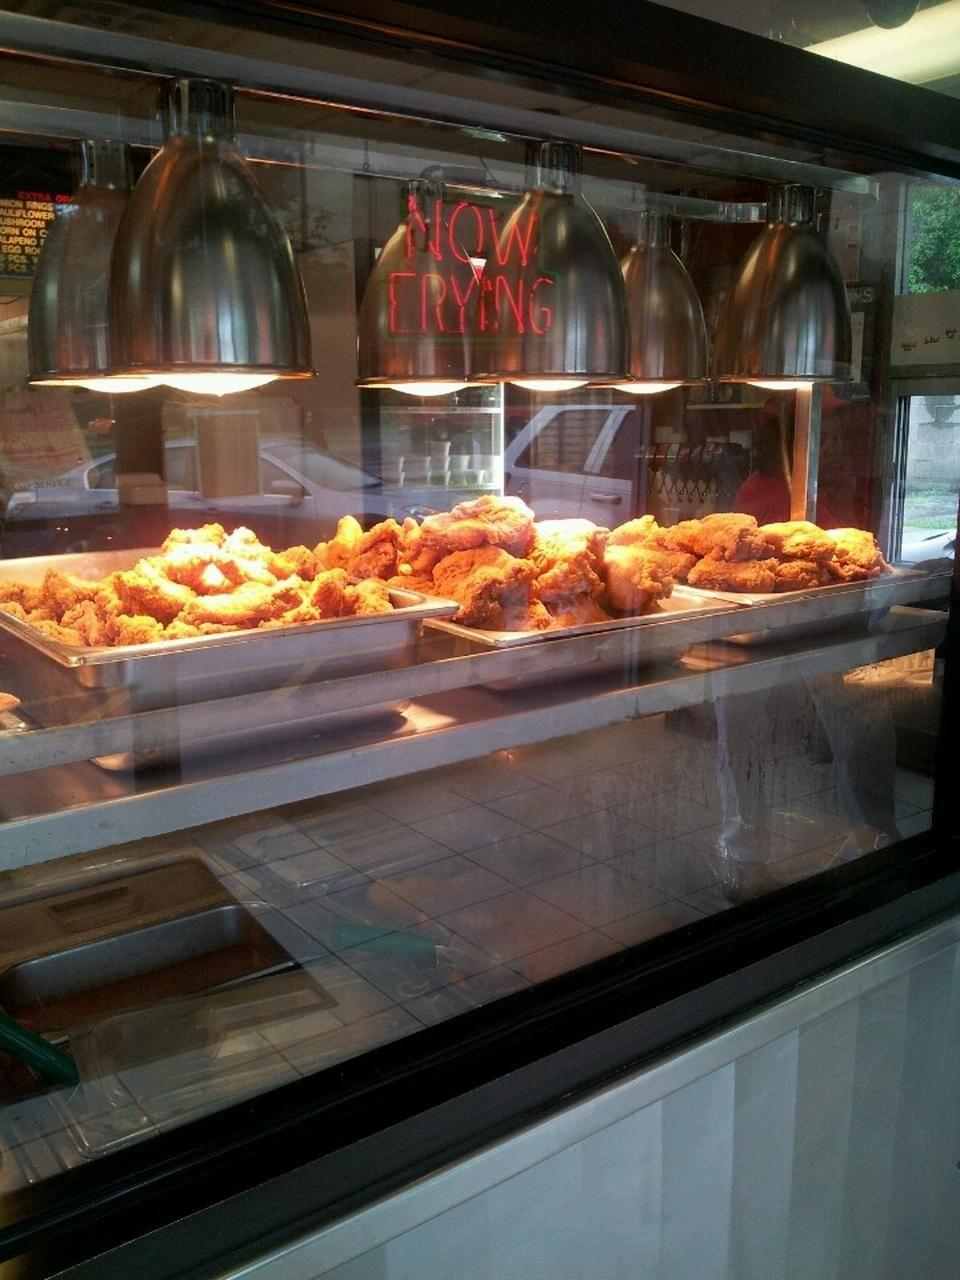 """<p><a href=""""https://www.tripadvisor.com/Restaurant_Review-g39588-d2083808-Reviews-Indi_s_Fried_Chicken-Lexington_Kentucky.html"""" rel=""""nofollow noopener"""" target=""""_blank"""" data-ylk=""""slk:Indi's Fast Food"""" class=""""link rapid-noclick-resp"""">Indi's Fast Food</a>, Lexington</p><p>Hands down the best <span class=""""entity tip_taste_match"""">drive thru</span> place in Lexington. The <span class=""""entity tip_taste_match"""">fried chicken</span> is fantastic and the prices are impossible to beat! I'm from Kentucky and Indi's over KFC any day. My mouth is watering now ...<span class=""""redactor-invisible-space""""> - Foursquare user <a href=""""https://foursquare.com/user/109077326"""" rel=""""nofollow noopener"""" target=""""_blank"""" data-ylk=""""slk:davin hammond"""" class=""""link rapid-noclick-resp"""">davin hammond</a></span><br></p>"""